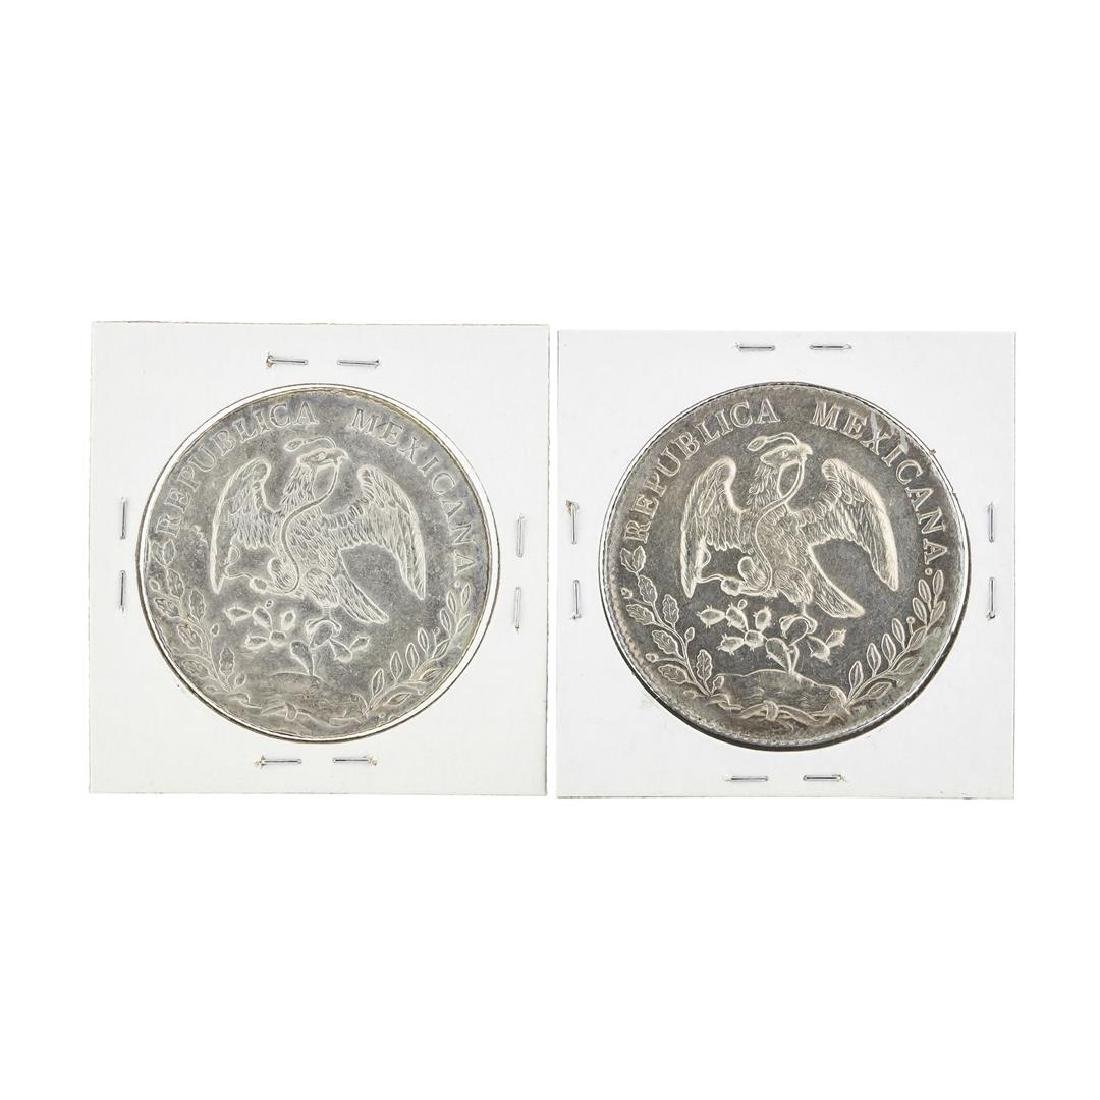 Set of (2) Mexico 8 Reales Silver Coins - 2